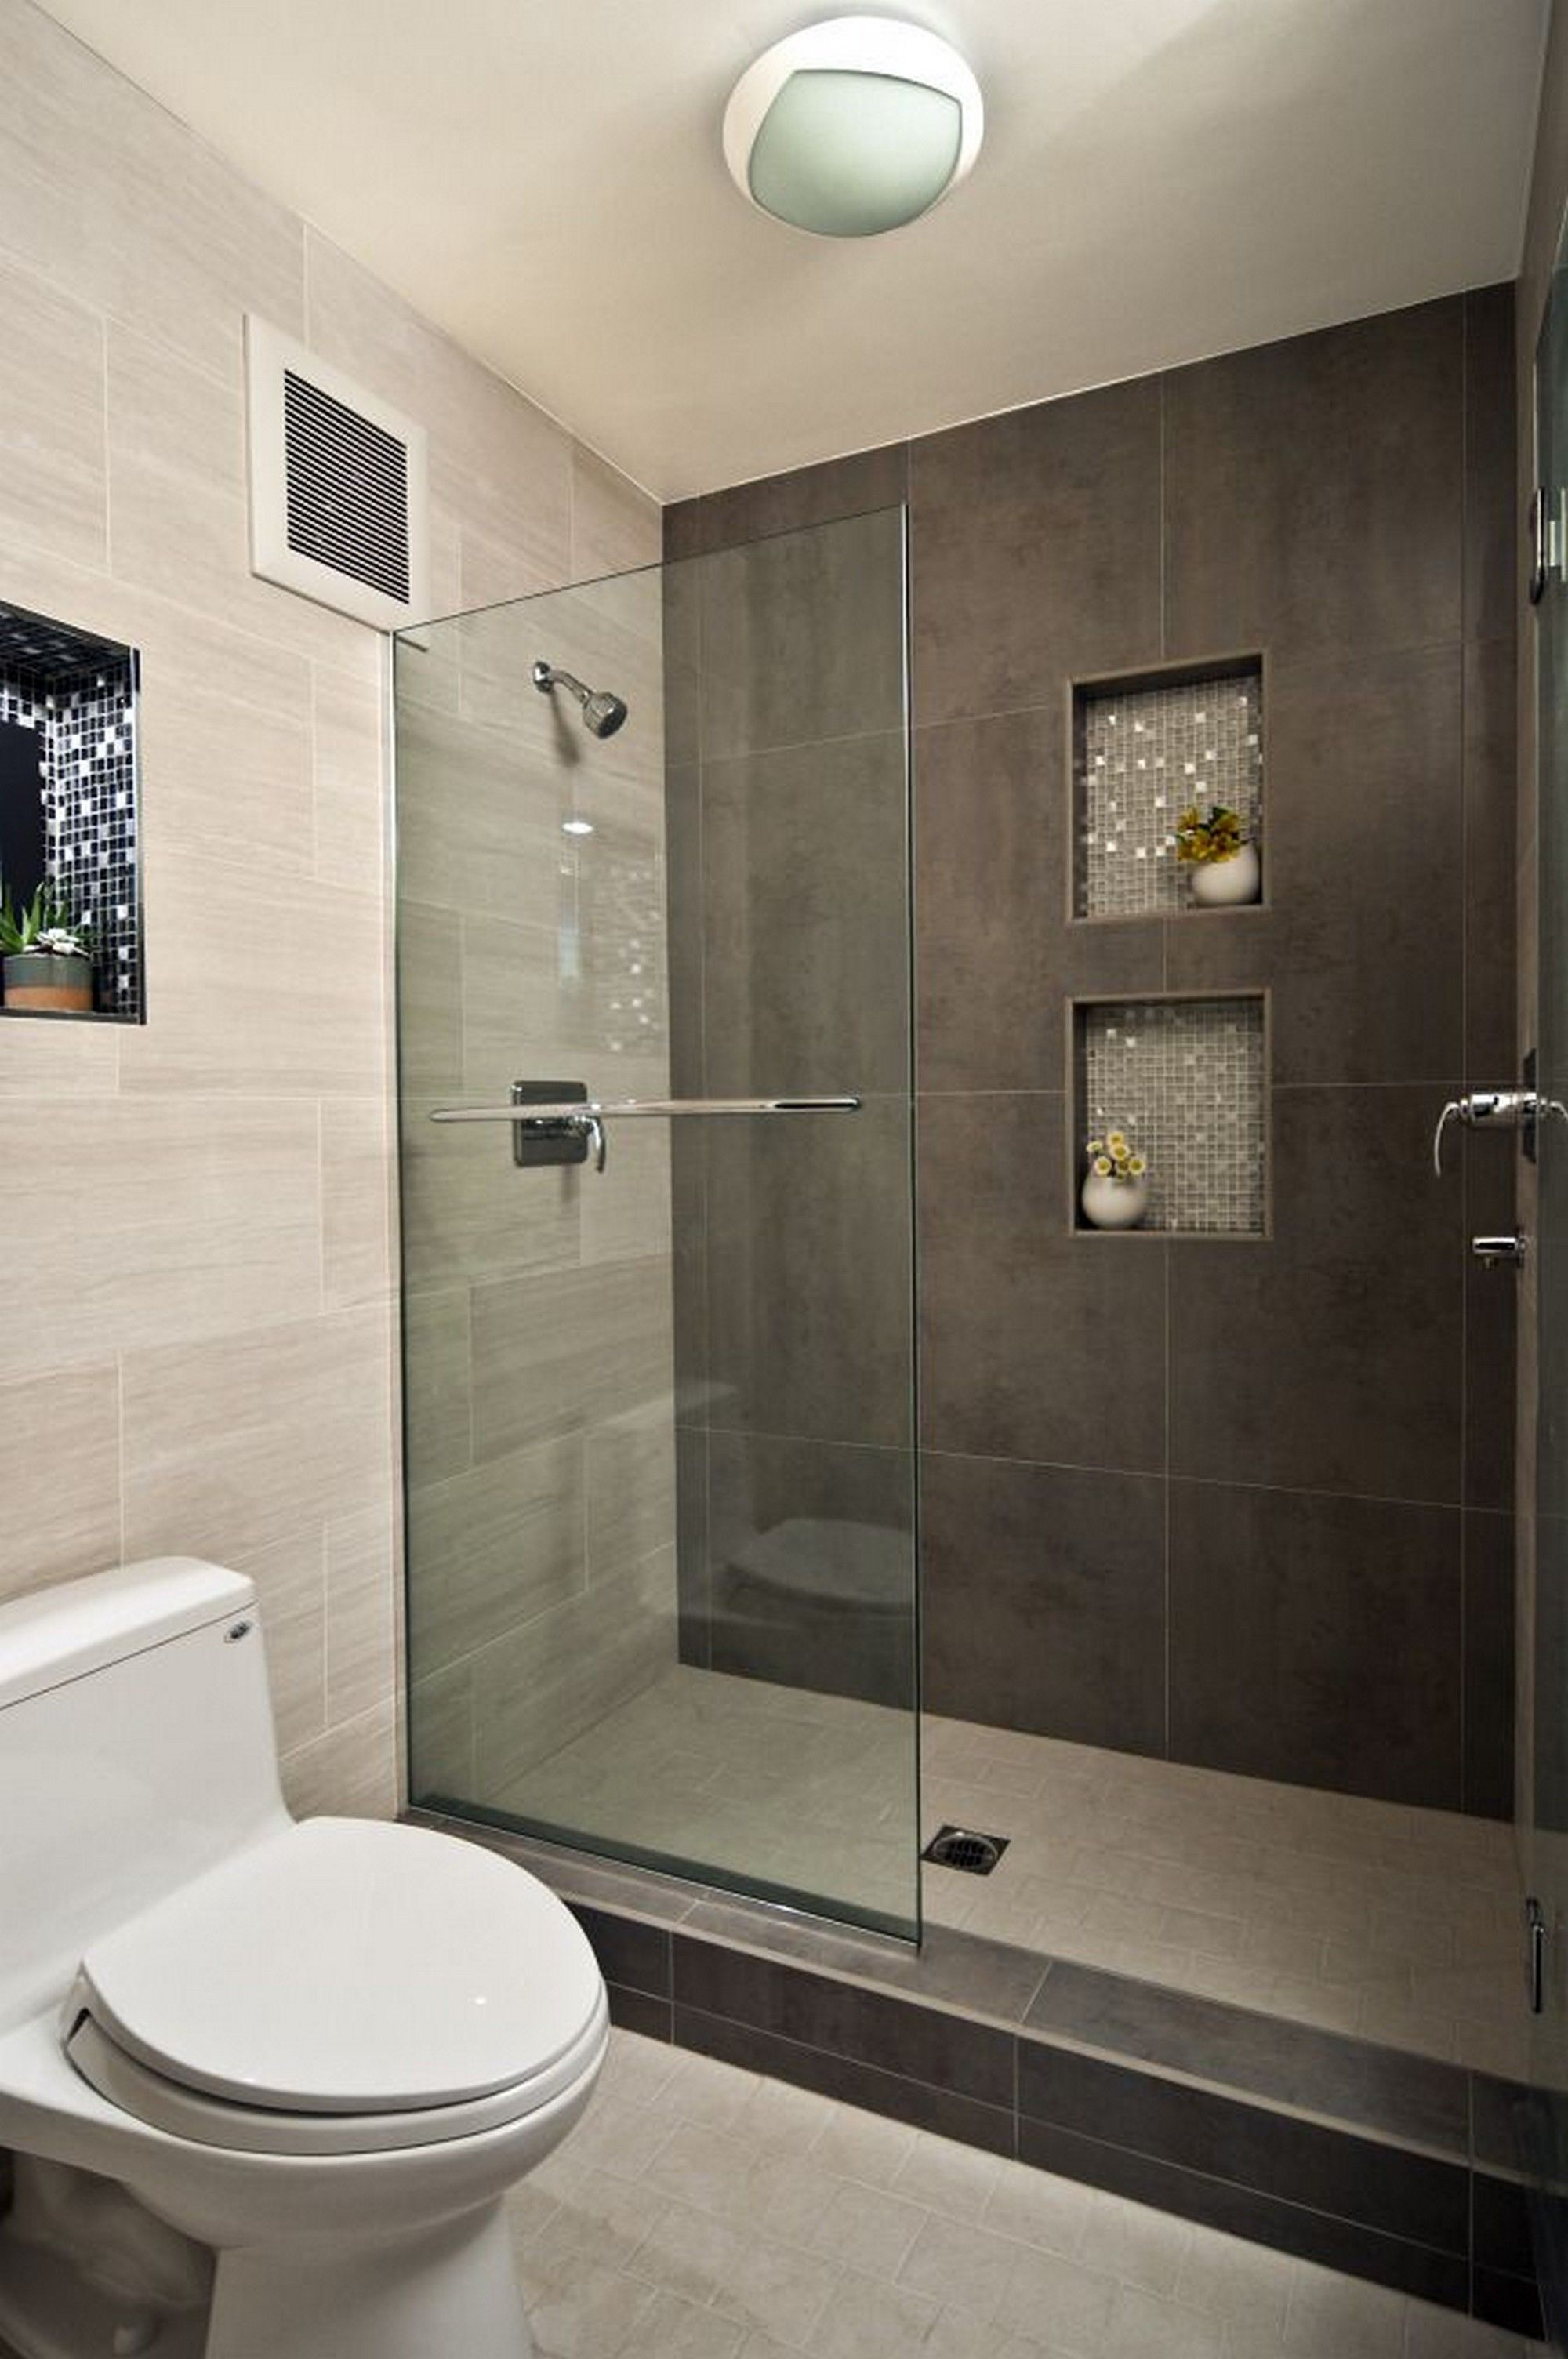 Epic Modern Bathroom Design Ideas With Walk In Shower | Pinterest | Small intended for Review Bathroom Remodel Ideas Small